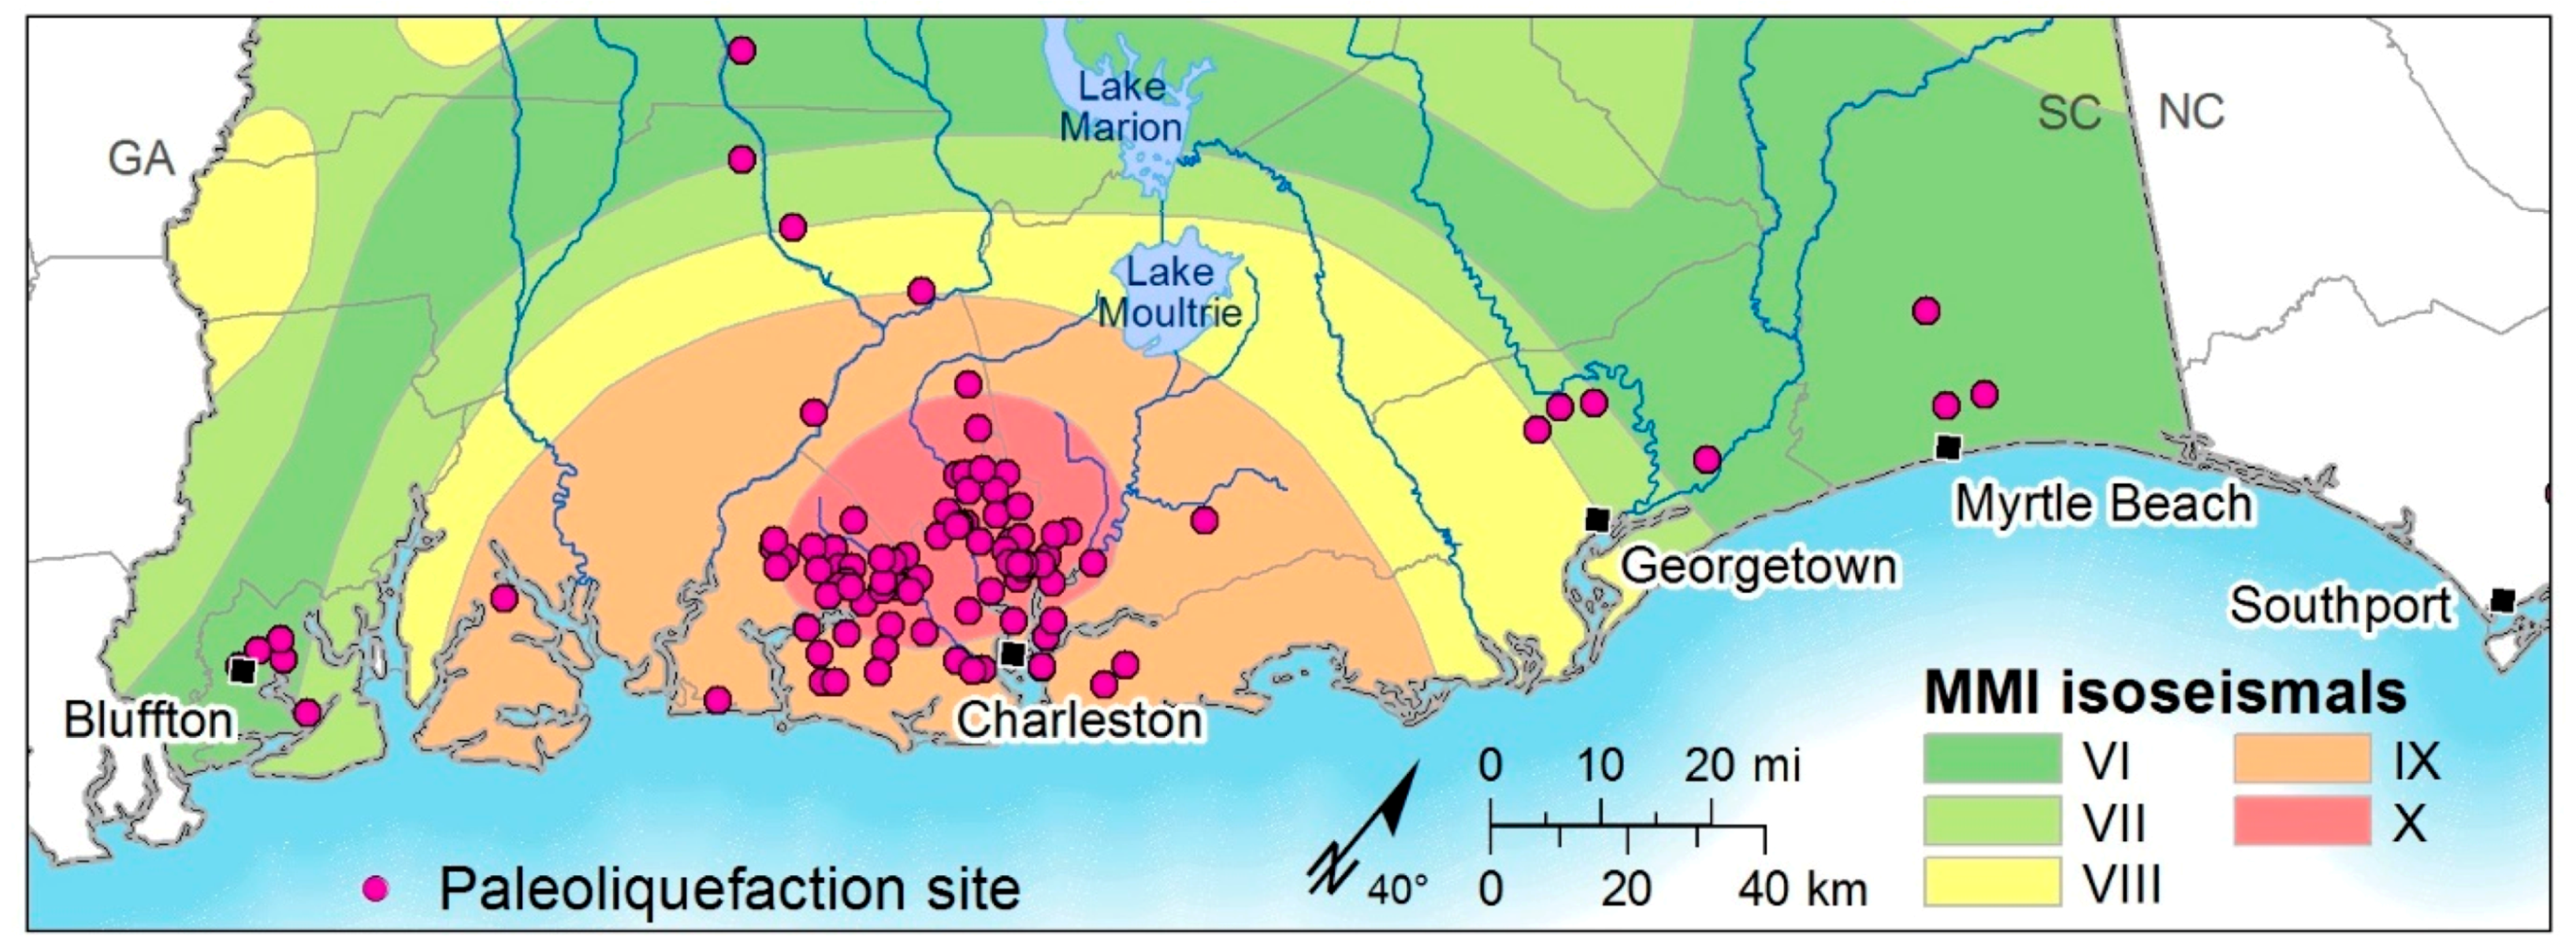 Geosciences   Free Full-Text   Paleoliquefaction Stus and ... on 1999 chamoli earthquake, seattle seismic map, yellowstone super volcano kill zone map, seismic map of america, seismic map of texas, seismic structure map, yellowstone seismic map, seismic map of the us, safety zone map, new madrid seismic zone, 2011 sikkim earthquake, ibc zip code map, gsa seismic map, 1934 bihar earthquake, canadian seismic map, seismic category map, anchorage seismic map, 2001 gujarat earthquake, mexico seismic map, seismic class map, canada seismic map, environmental zone map, yellowstone volcano blast zone map, ibc seismic map, seismic camp map,